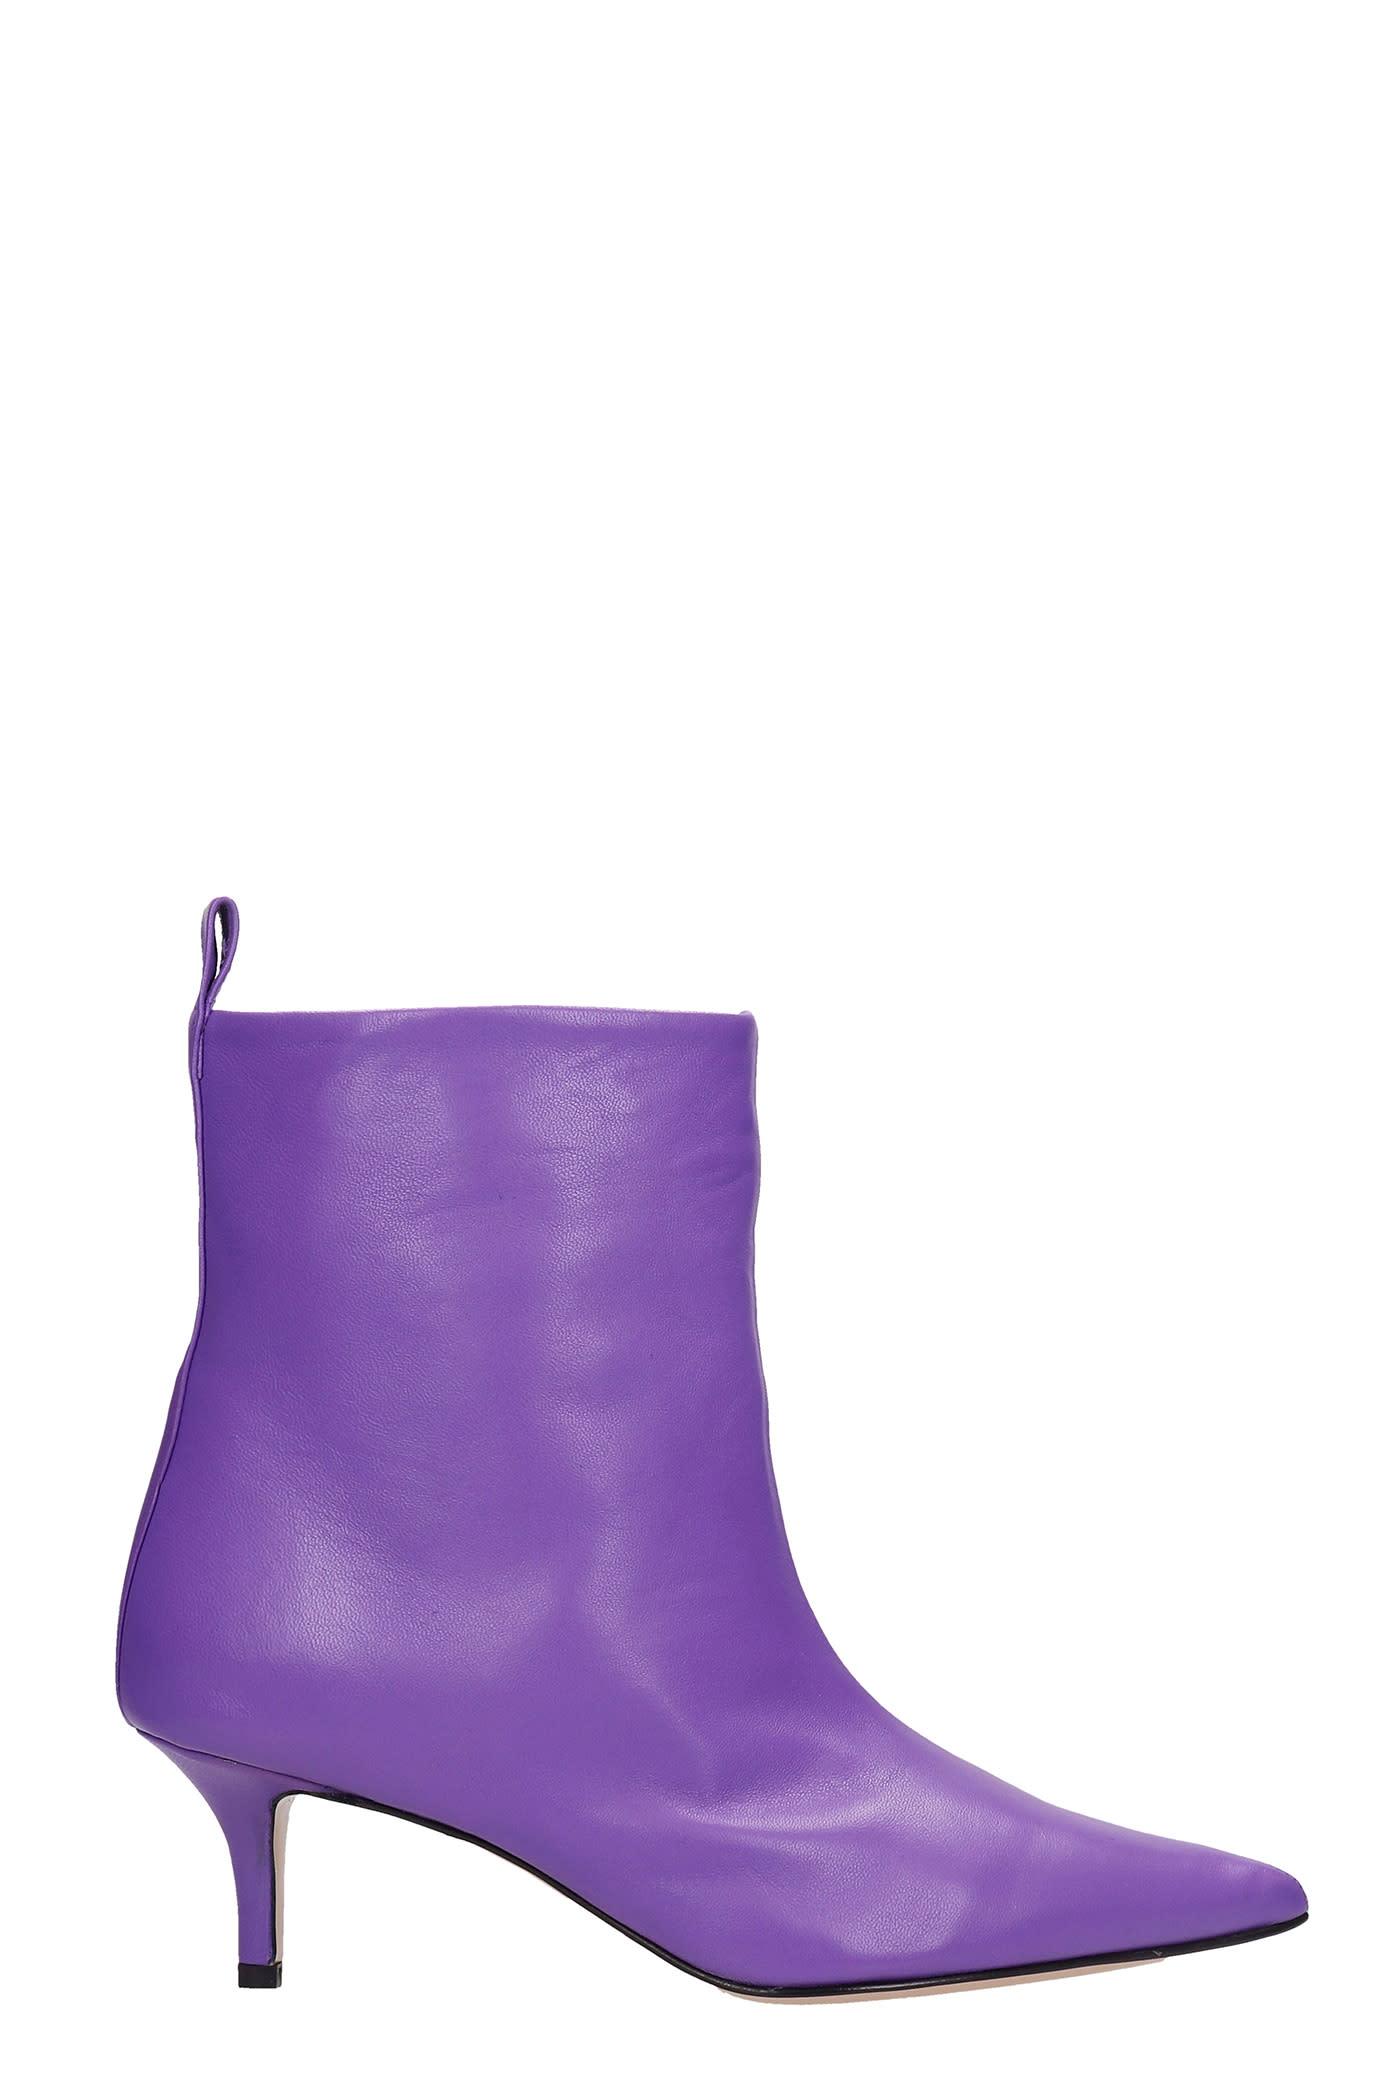 Bella Low Heels Ankle Boots In Viola Leather